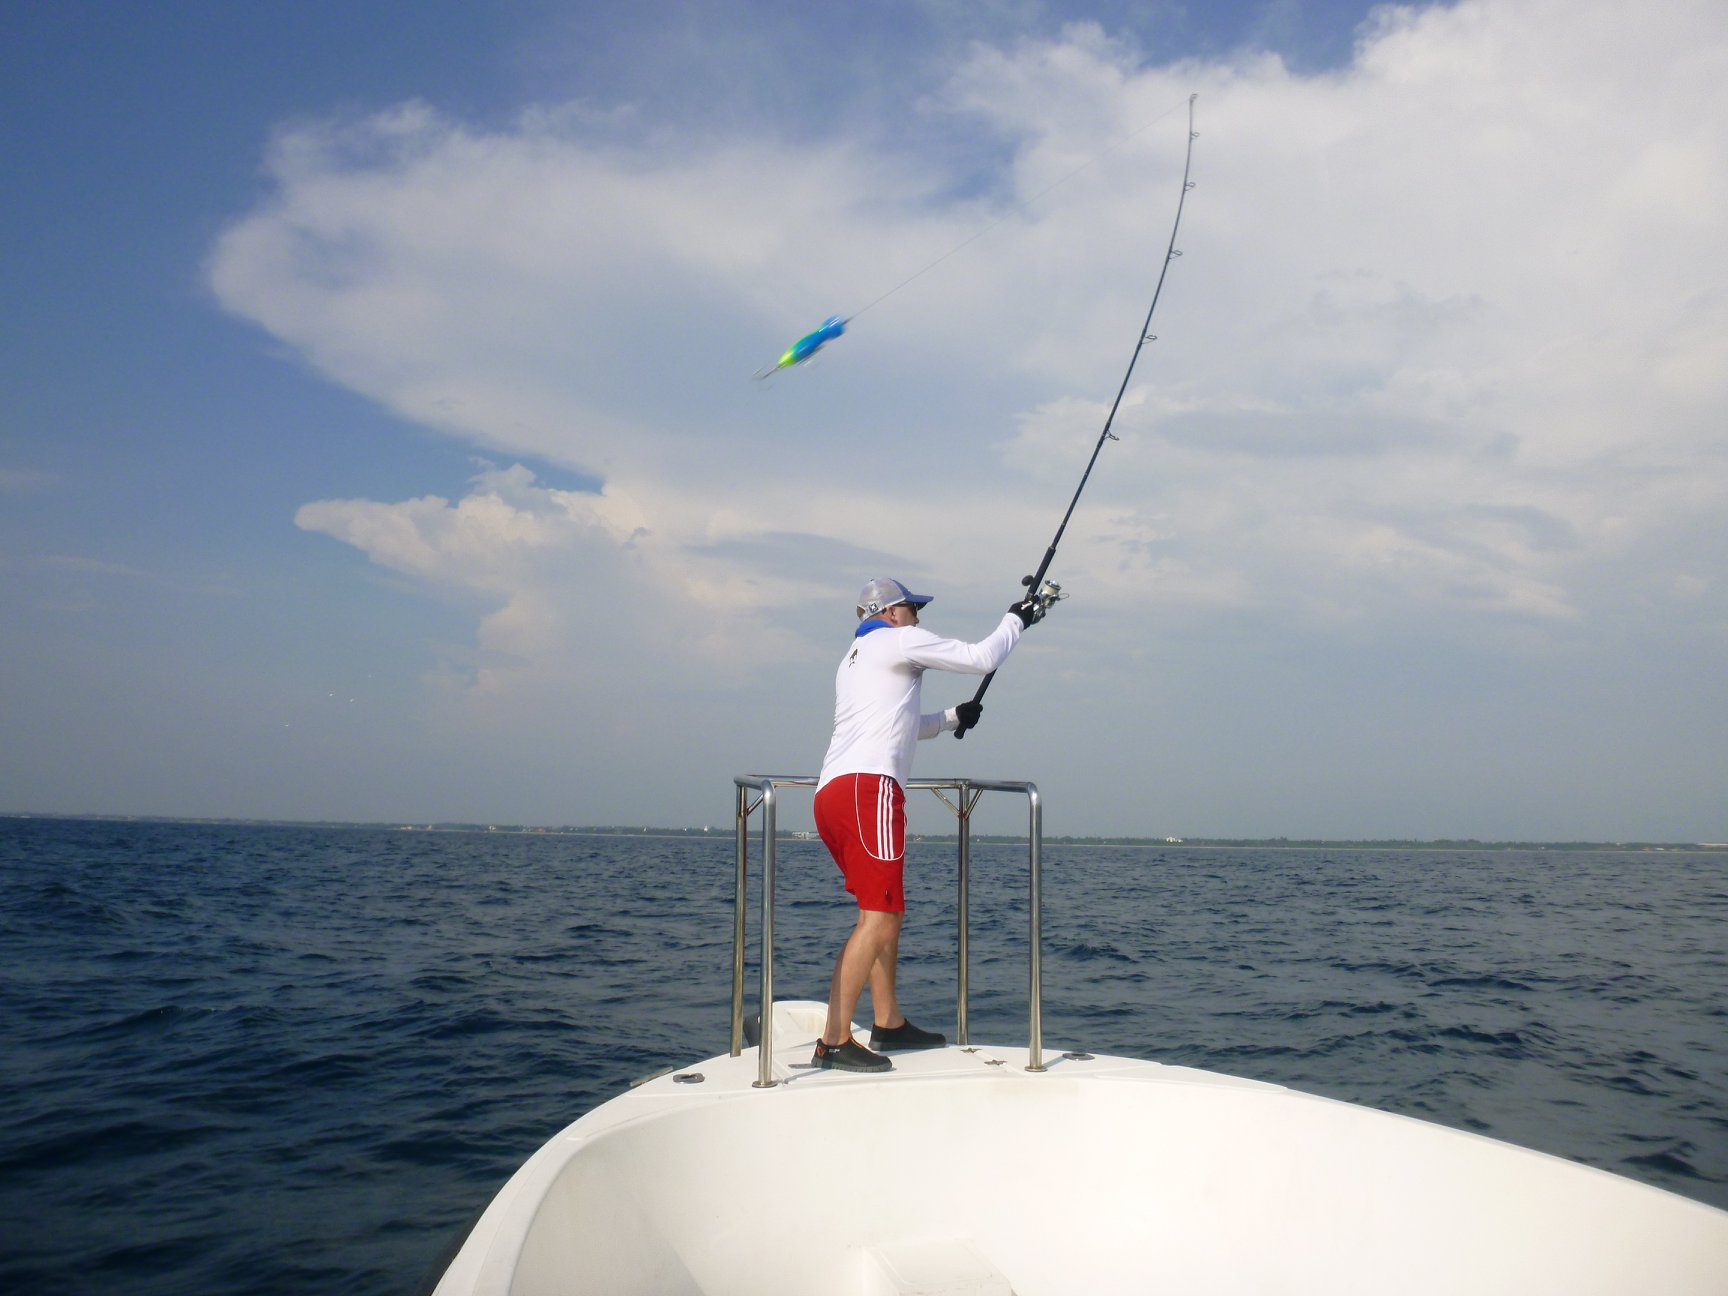 GT Popping Sri Lanka GT Fishing.jpg